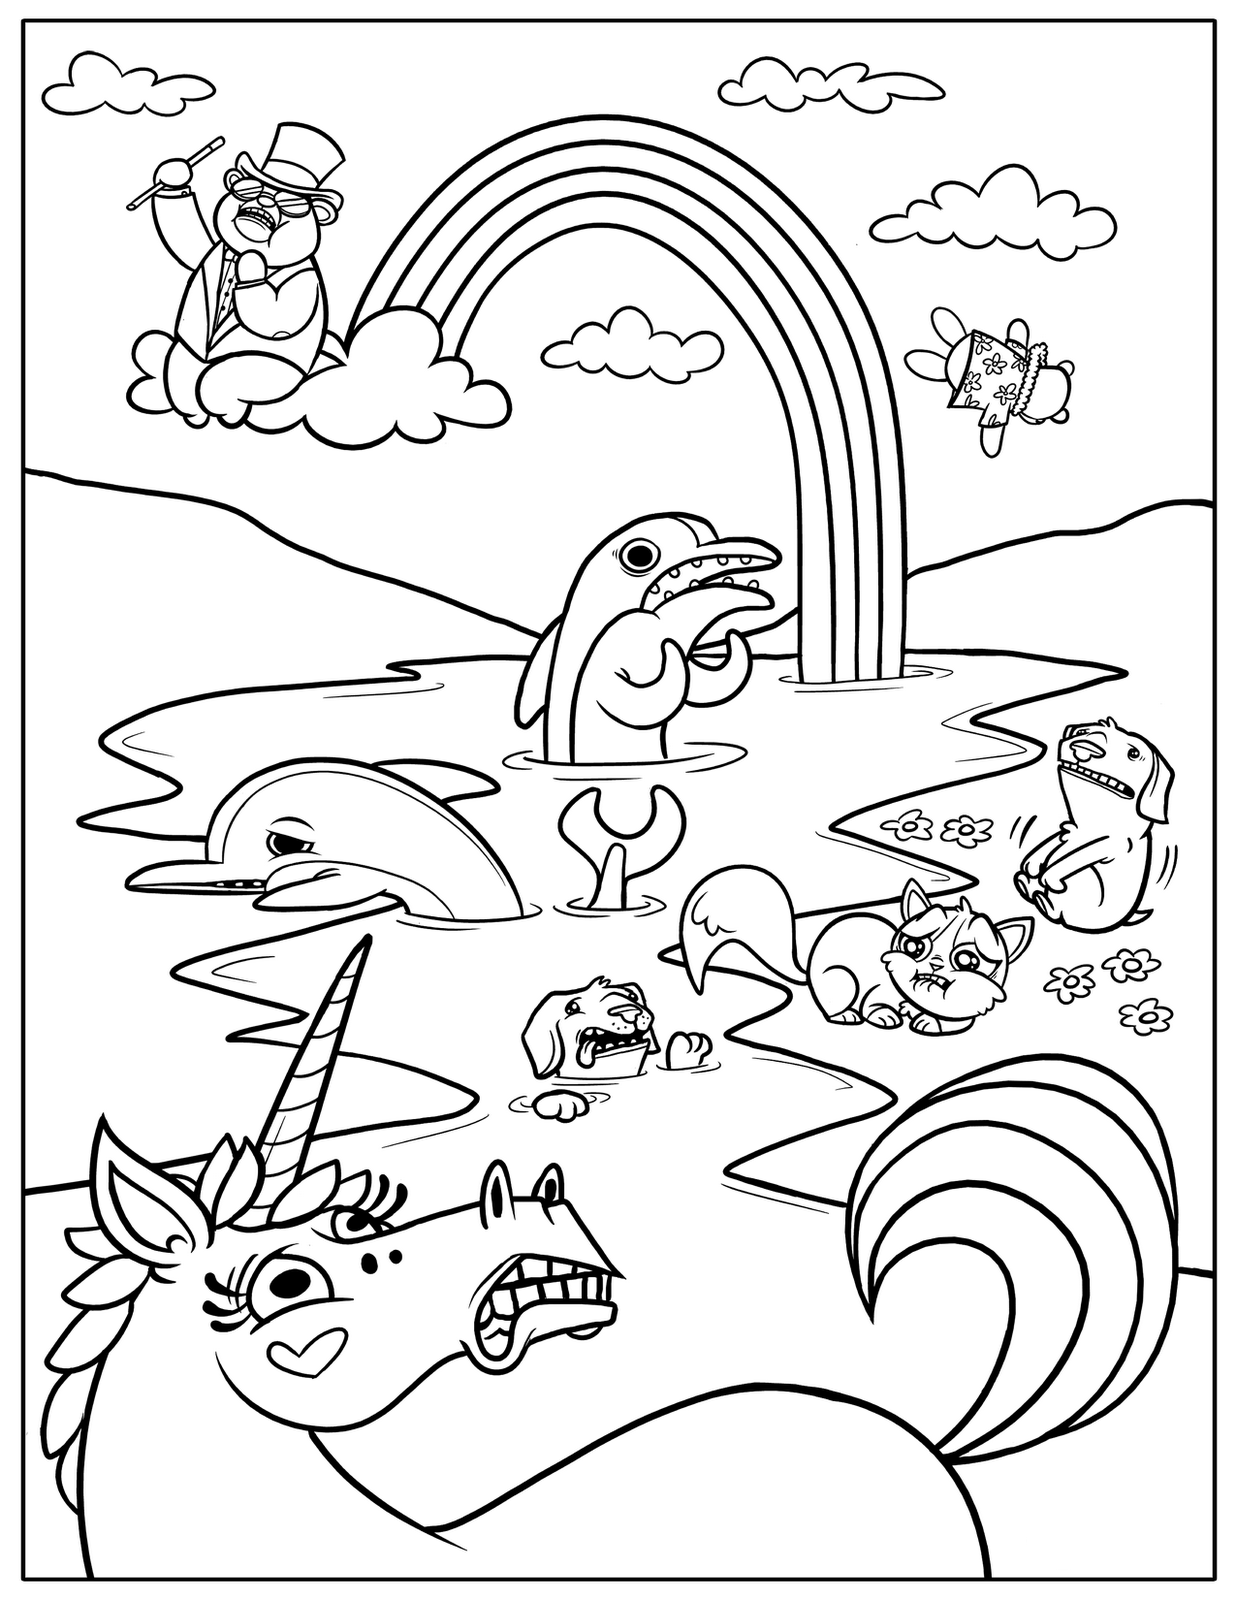 kids fun coloring pages free printable care bear coloring pages for kids coloring kids pages fun